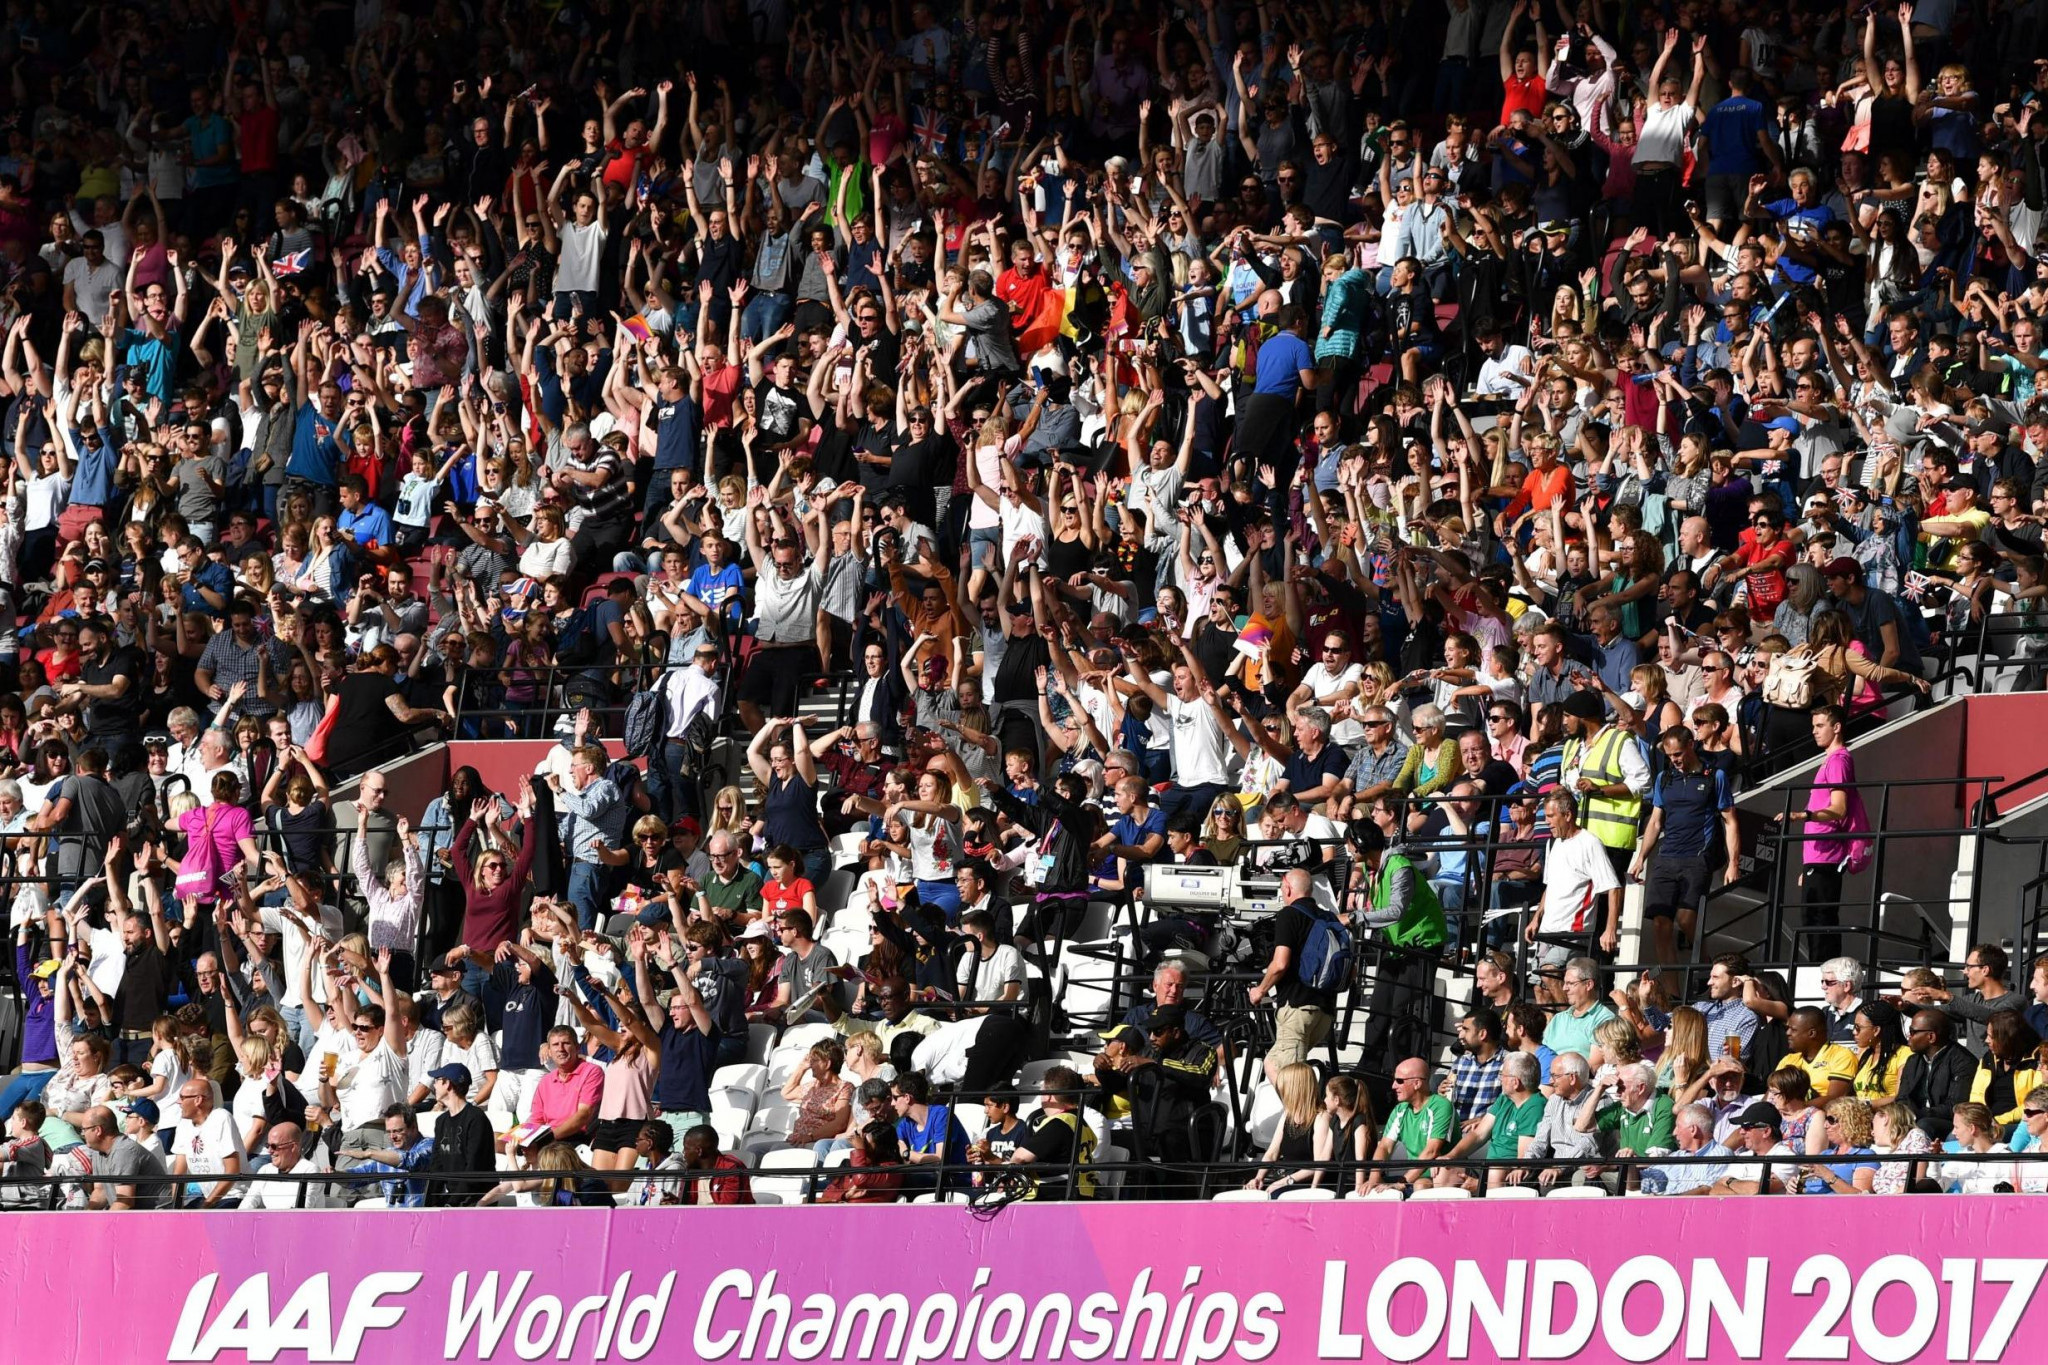 Record crowds attended the 2017 IAAF World Championships in London ©Getty Images